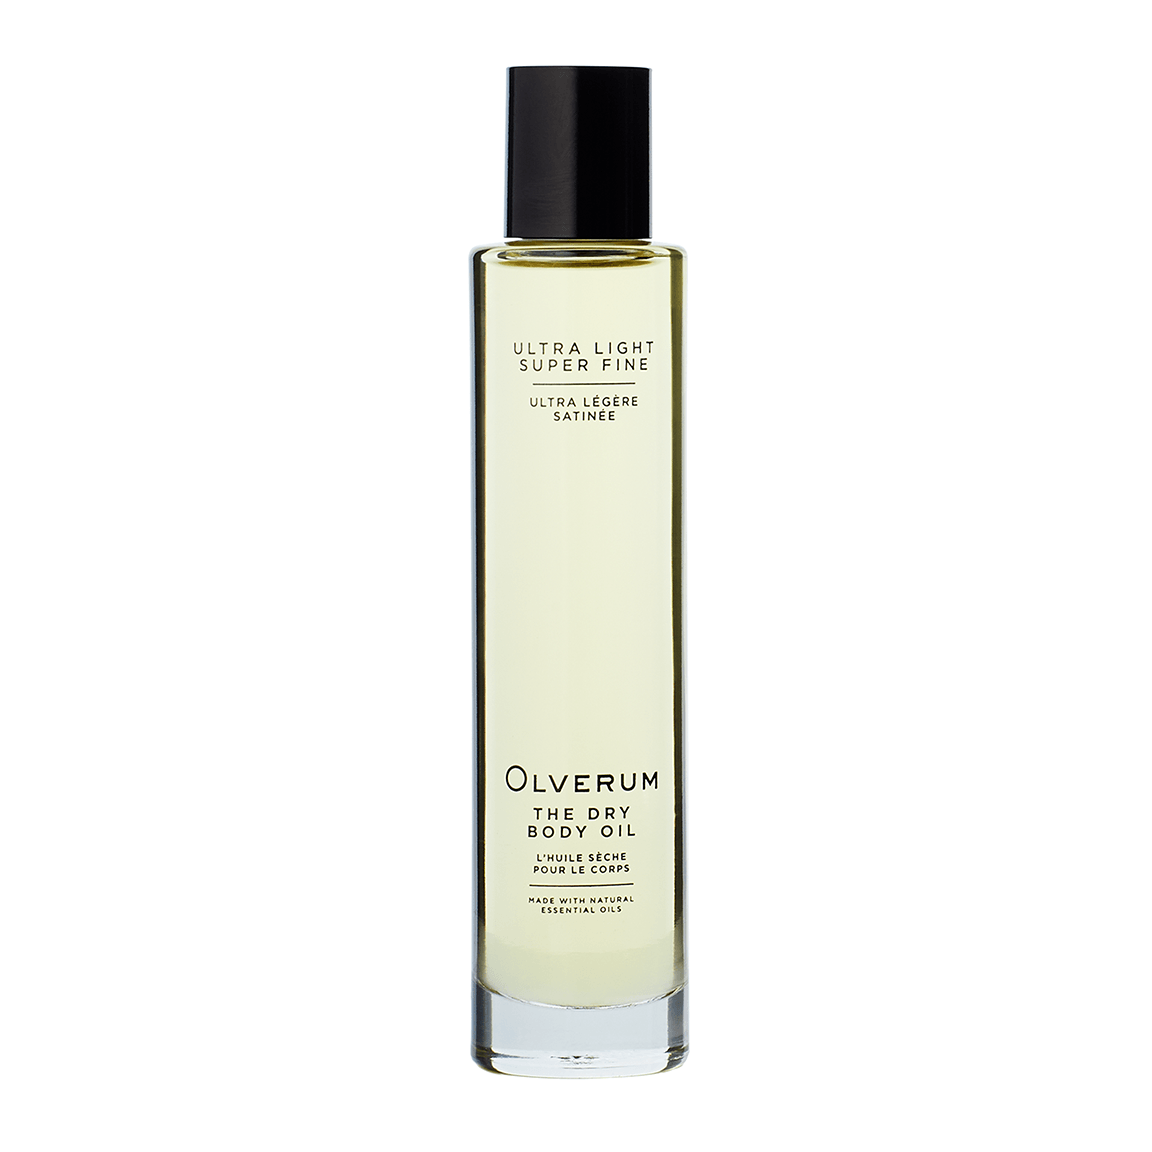 The Dry Body Oil by Olverum